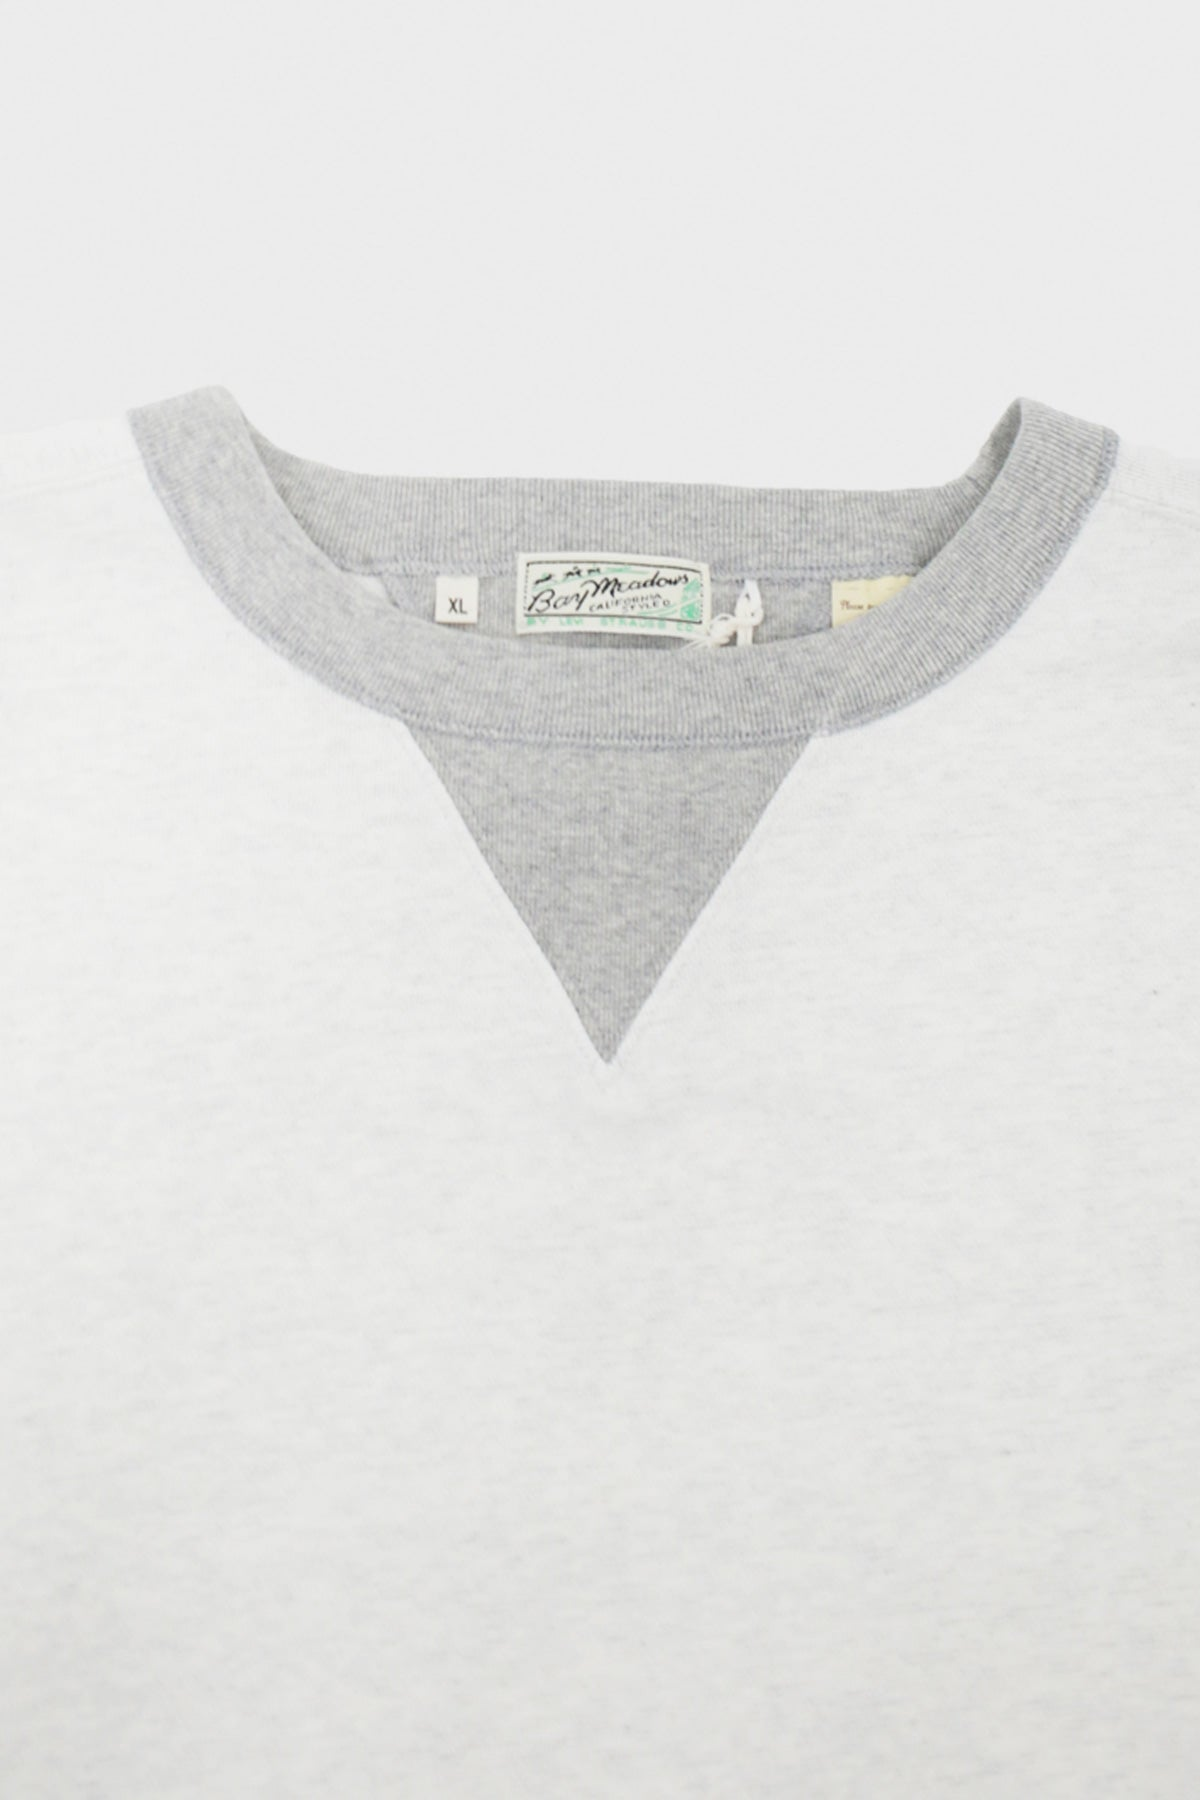 Levi's Vintage Clothing - Bay Meadows Sweatshirt - White - Canoe Club